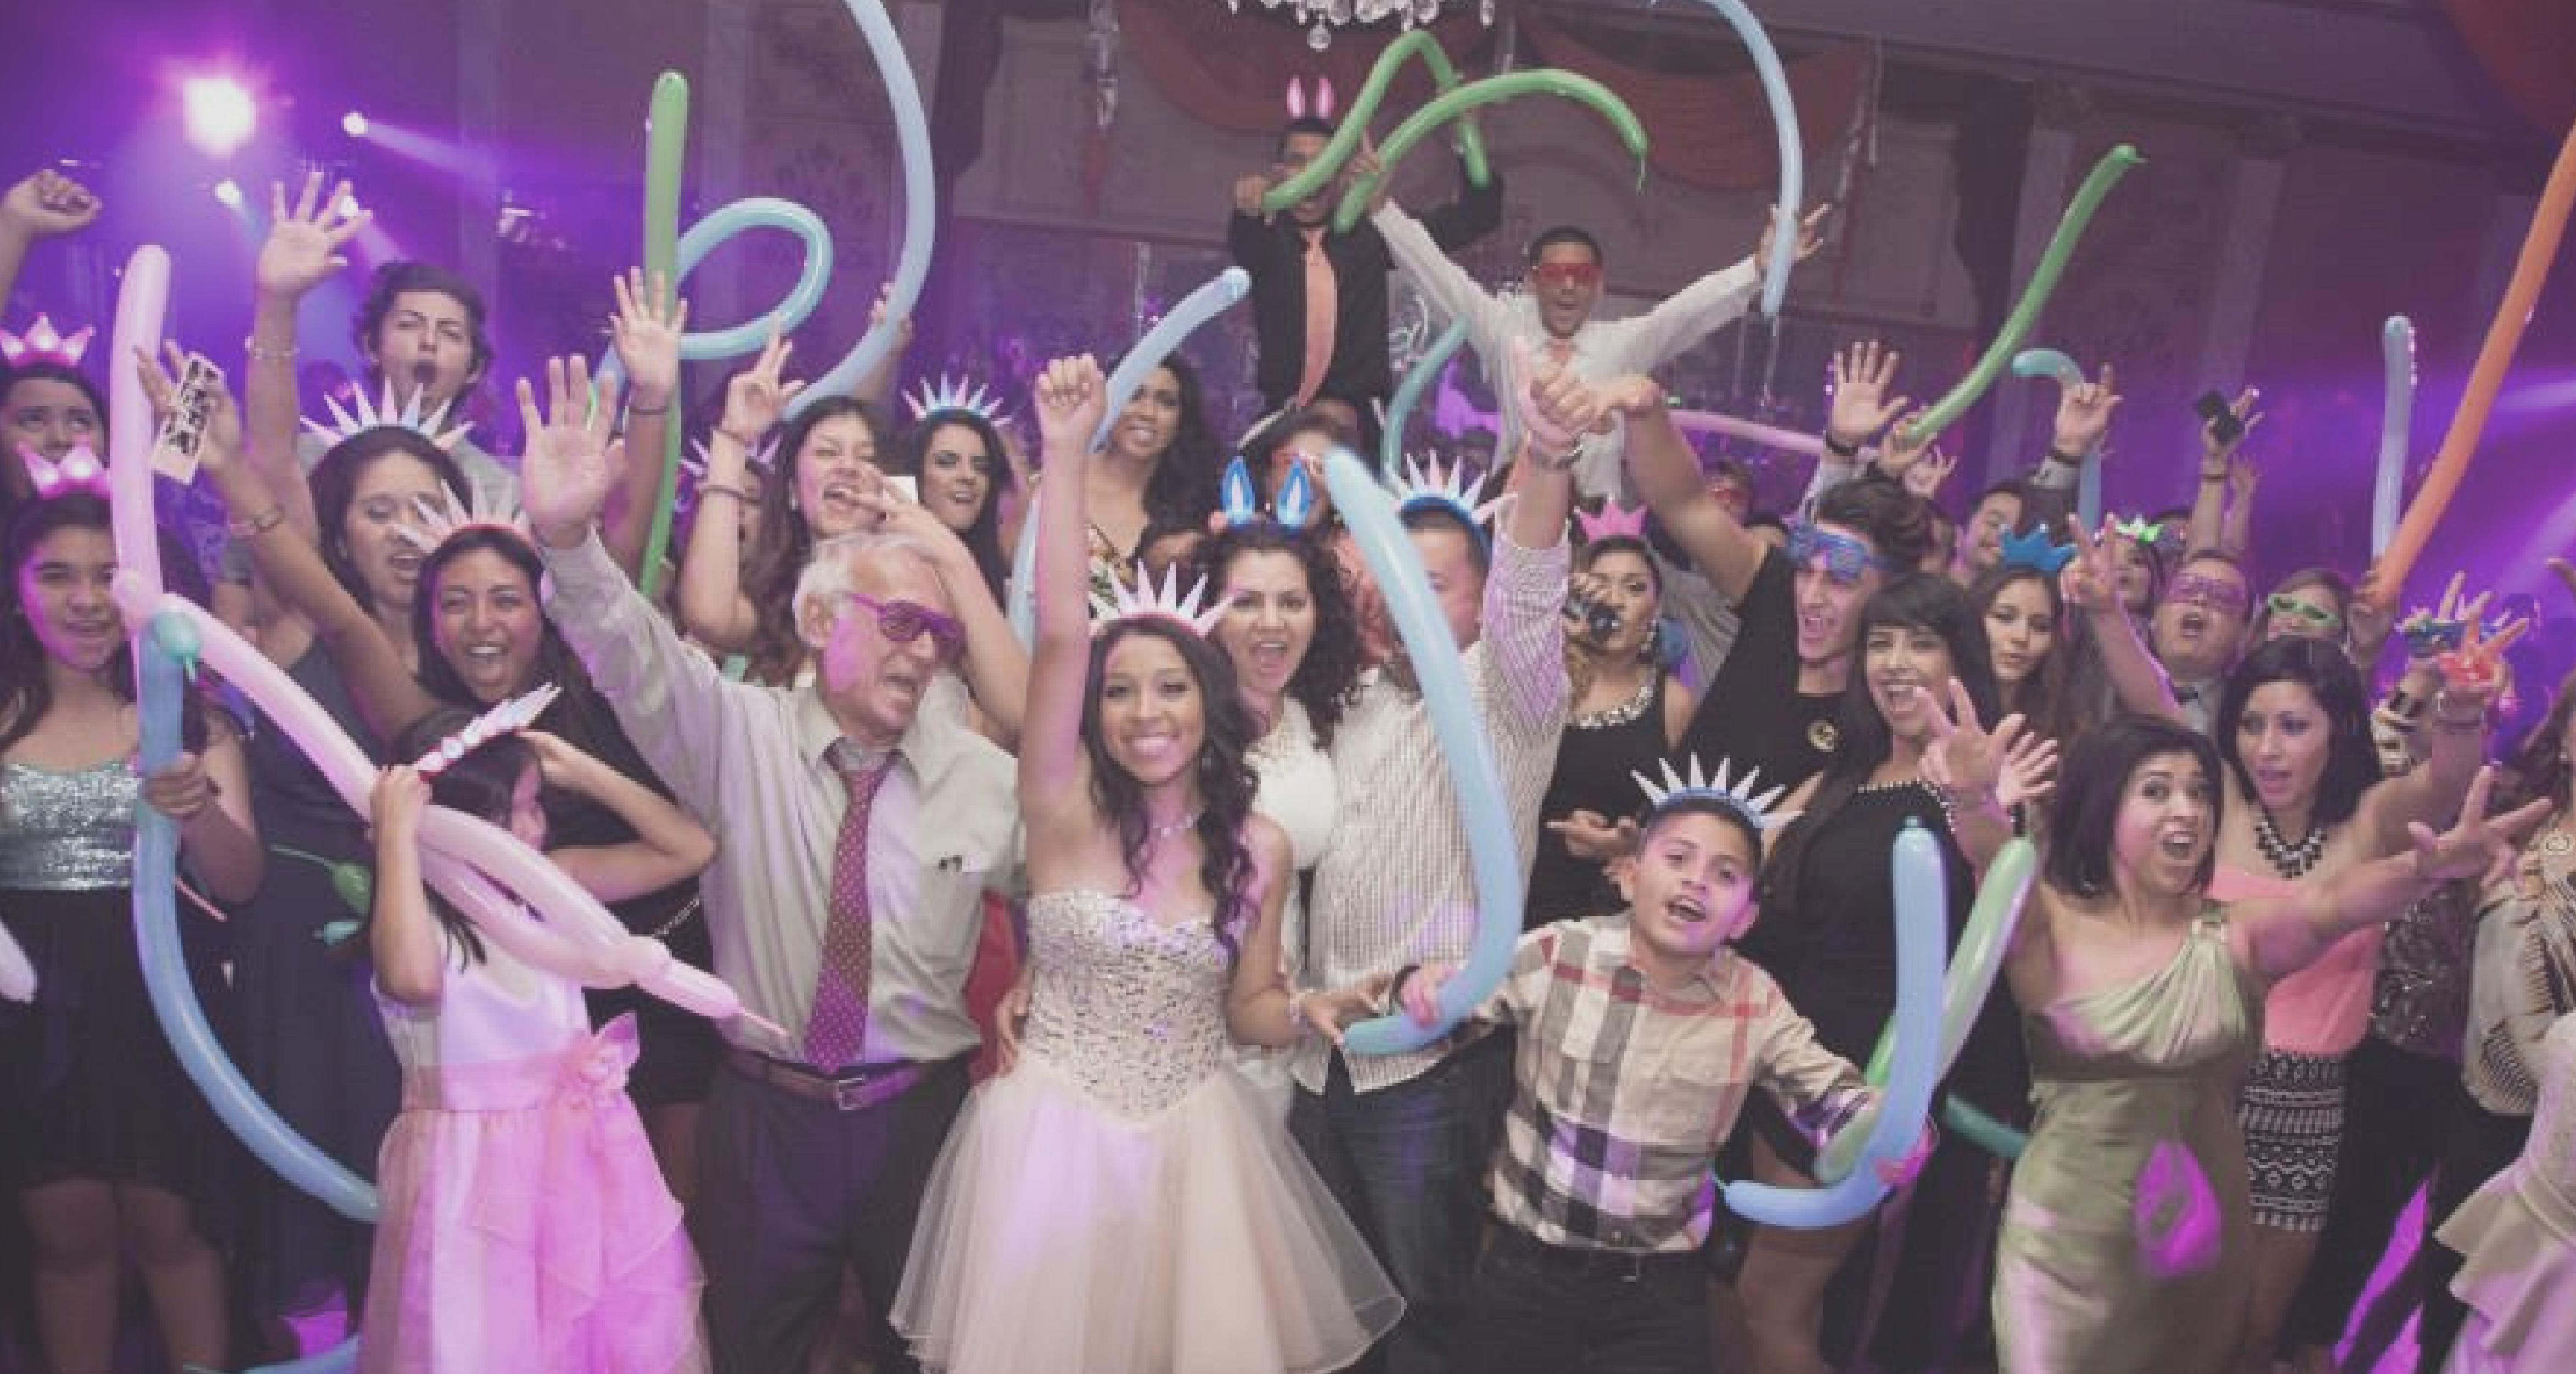 Plan a Quinceanera with Mariachi Alegre de Tucson this summer [Source: Quinceanera.com]